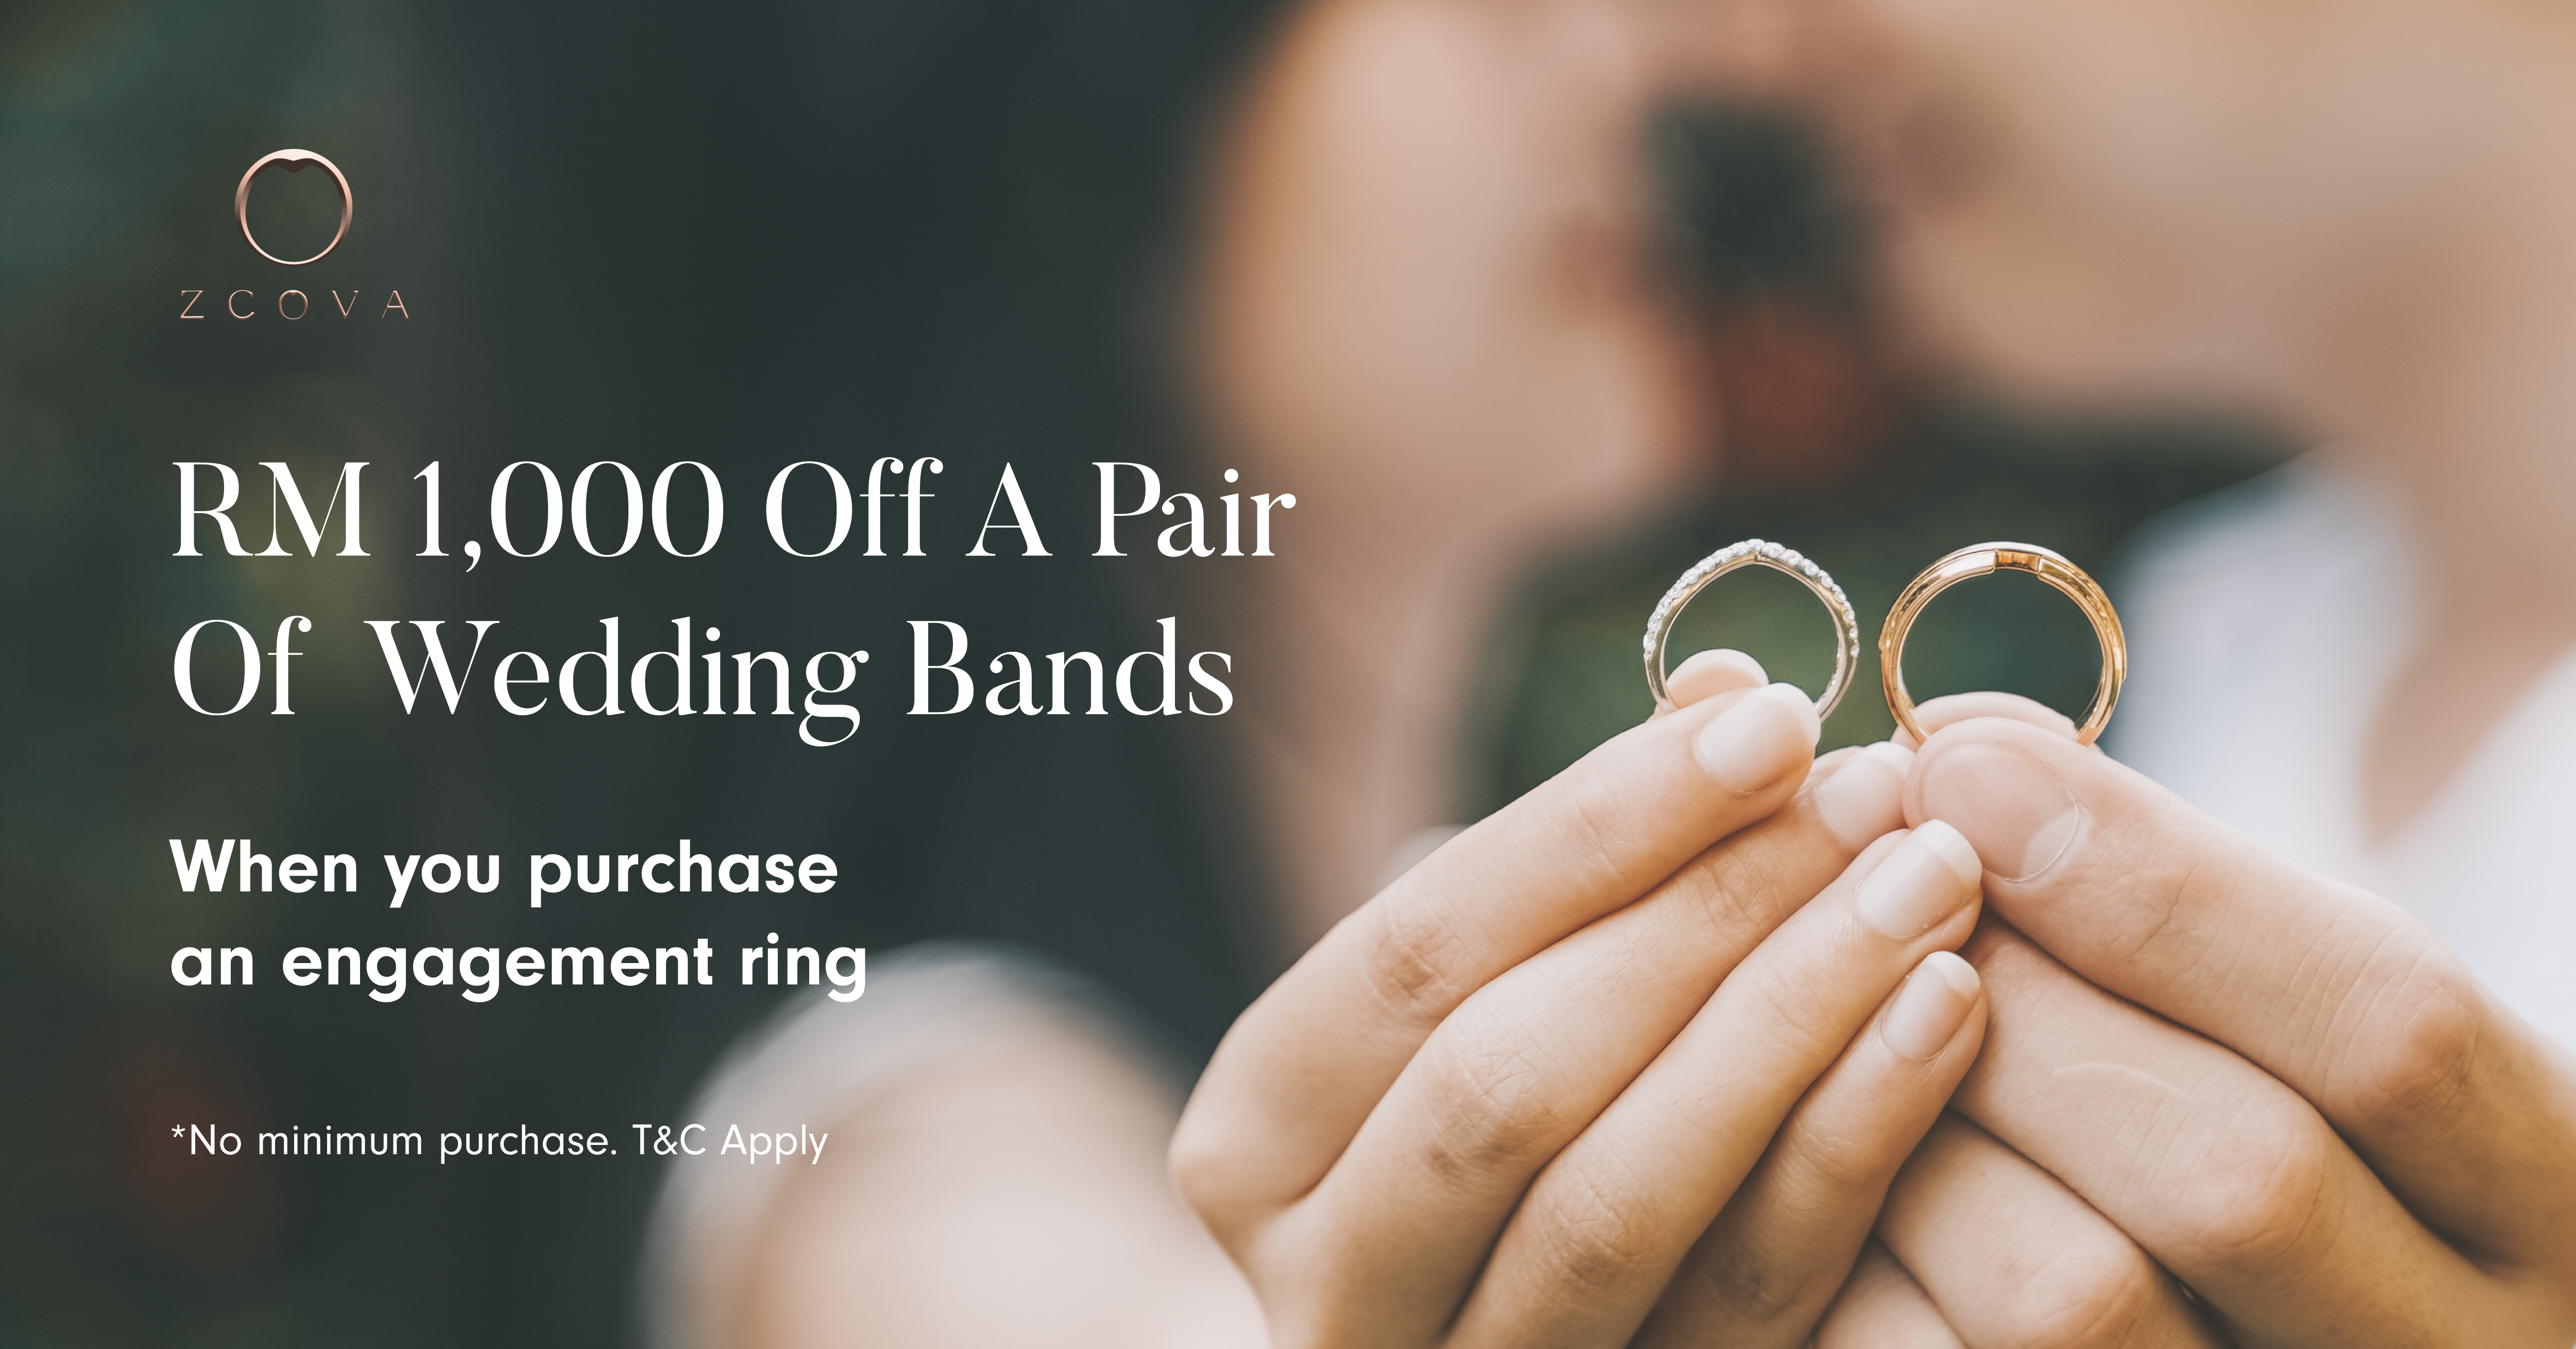 zcova wedding band promotion malaysia rm1000 discount voucher